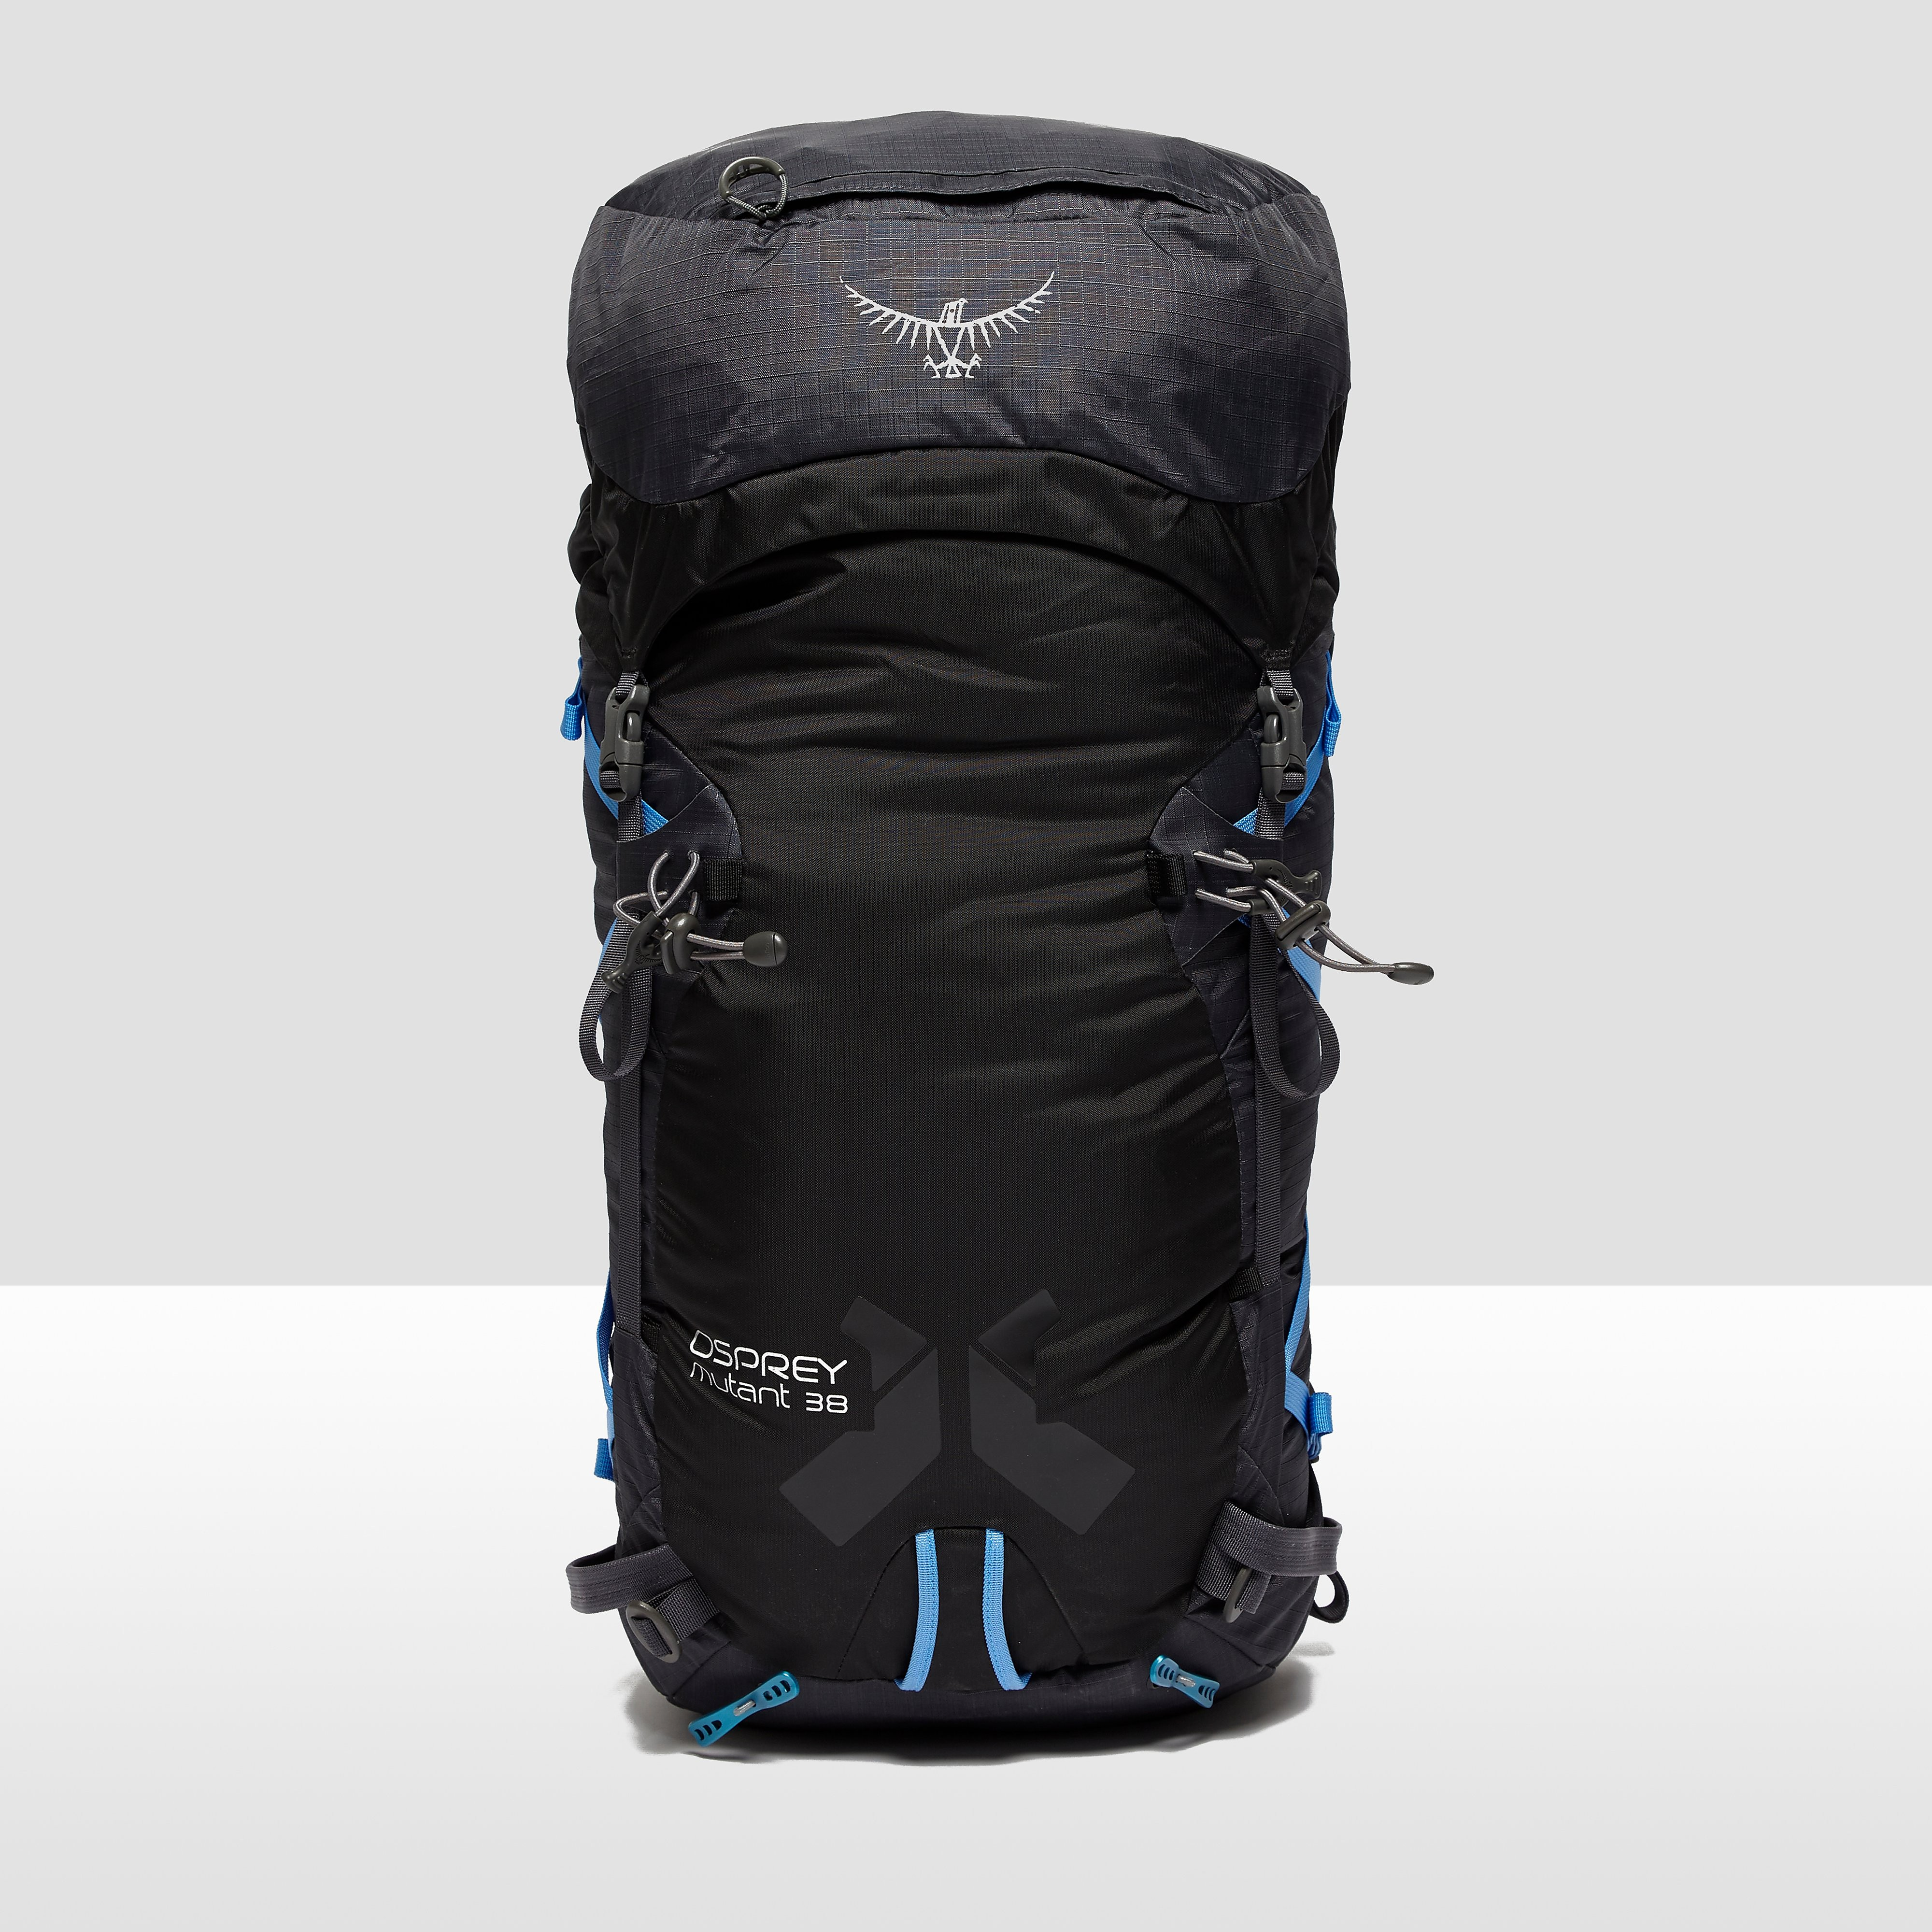 Osprey Mutant 38 Climbing Backpack